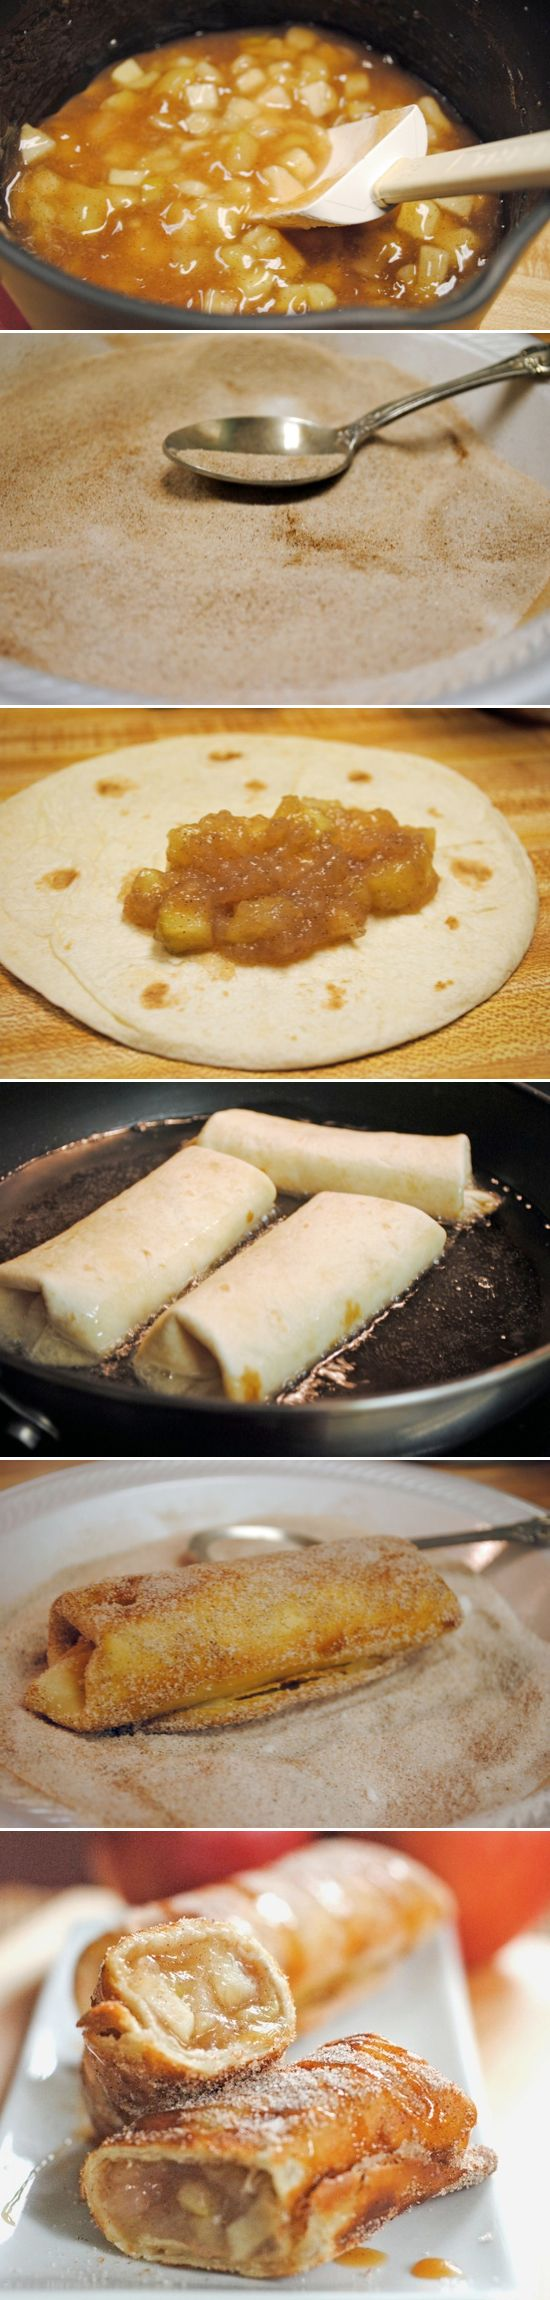 apple cinnamon chimichangas